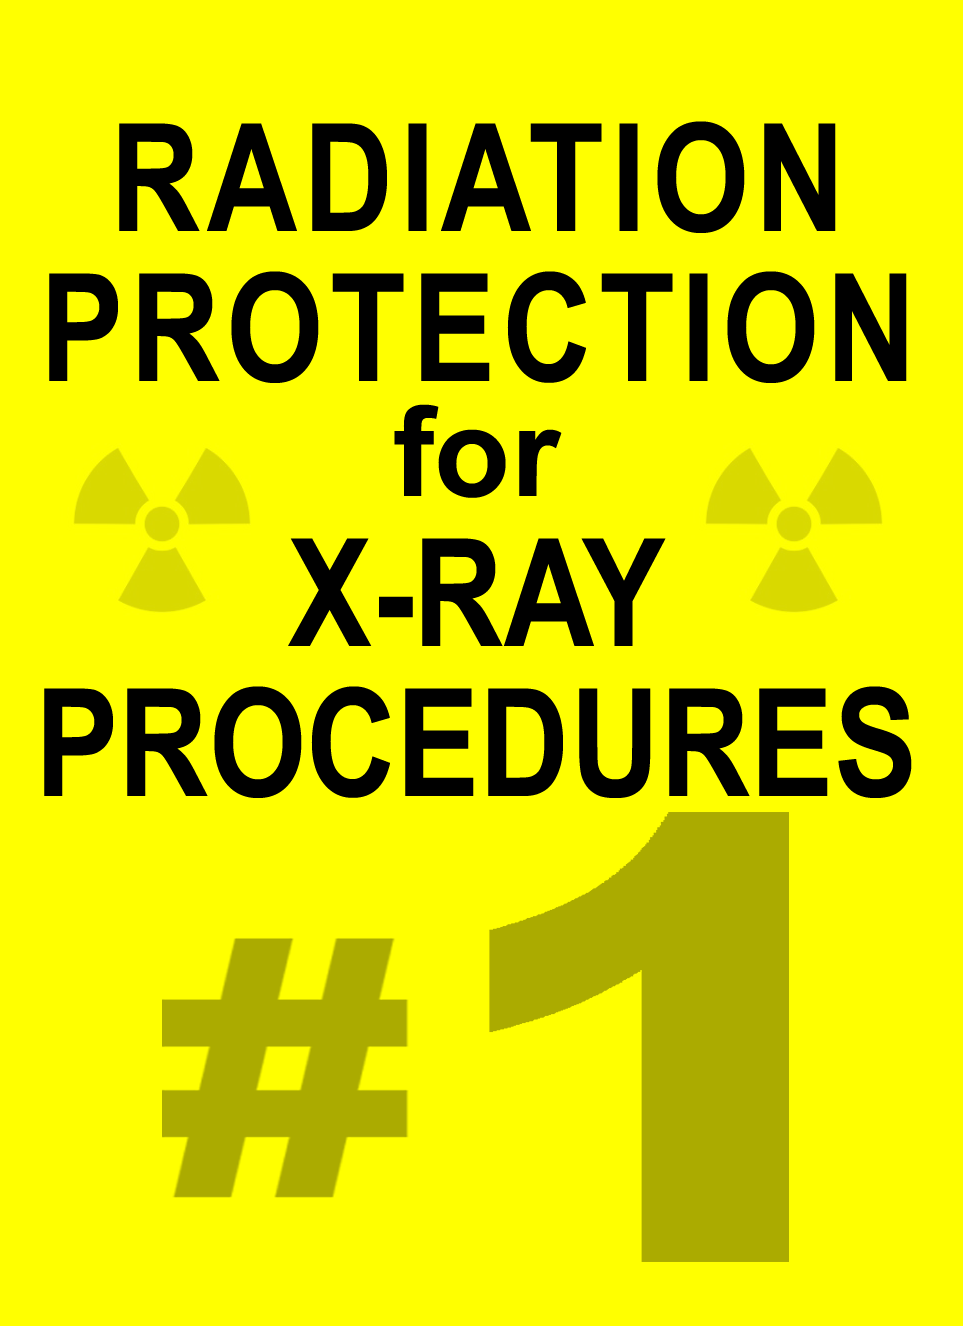 6a8d44316aa2 PART 1: Radiation Protection for X-ray Procedures - Course & Test Mailed